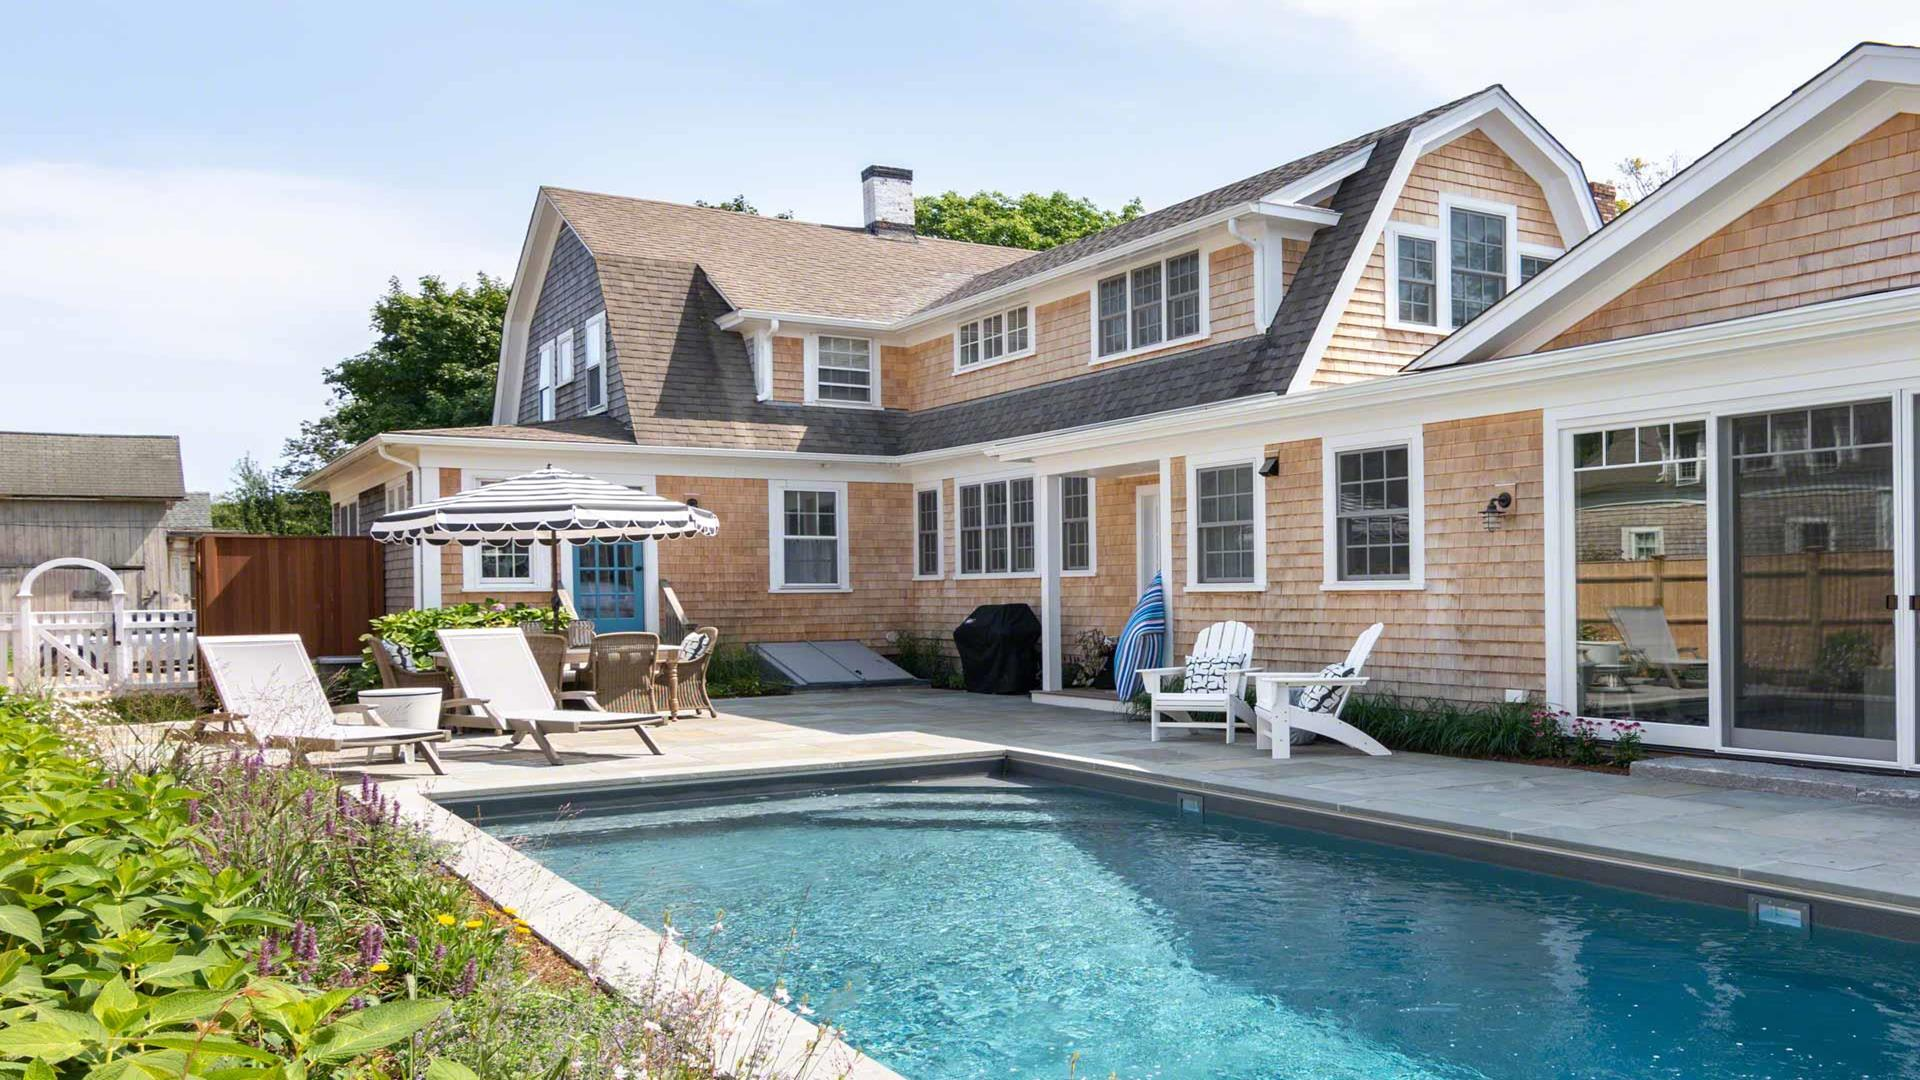 Village Gambrel With Pool And Pool House